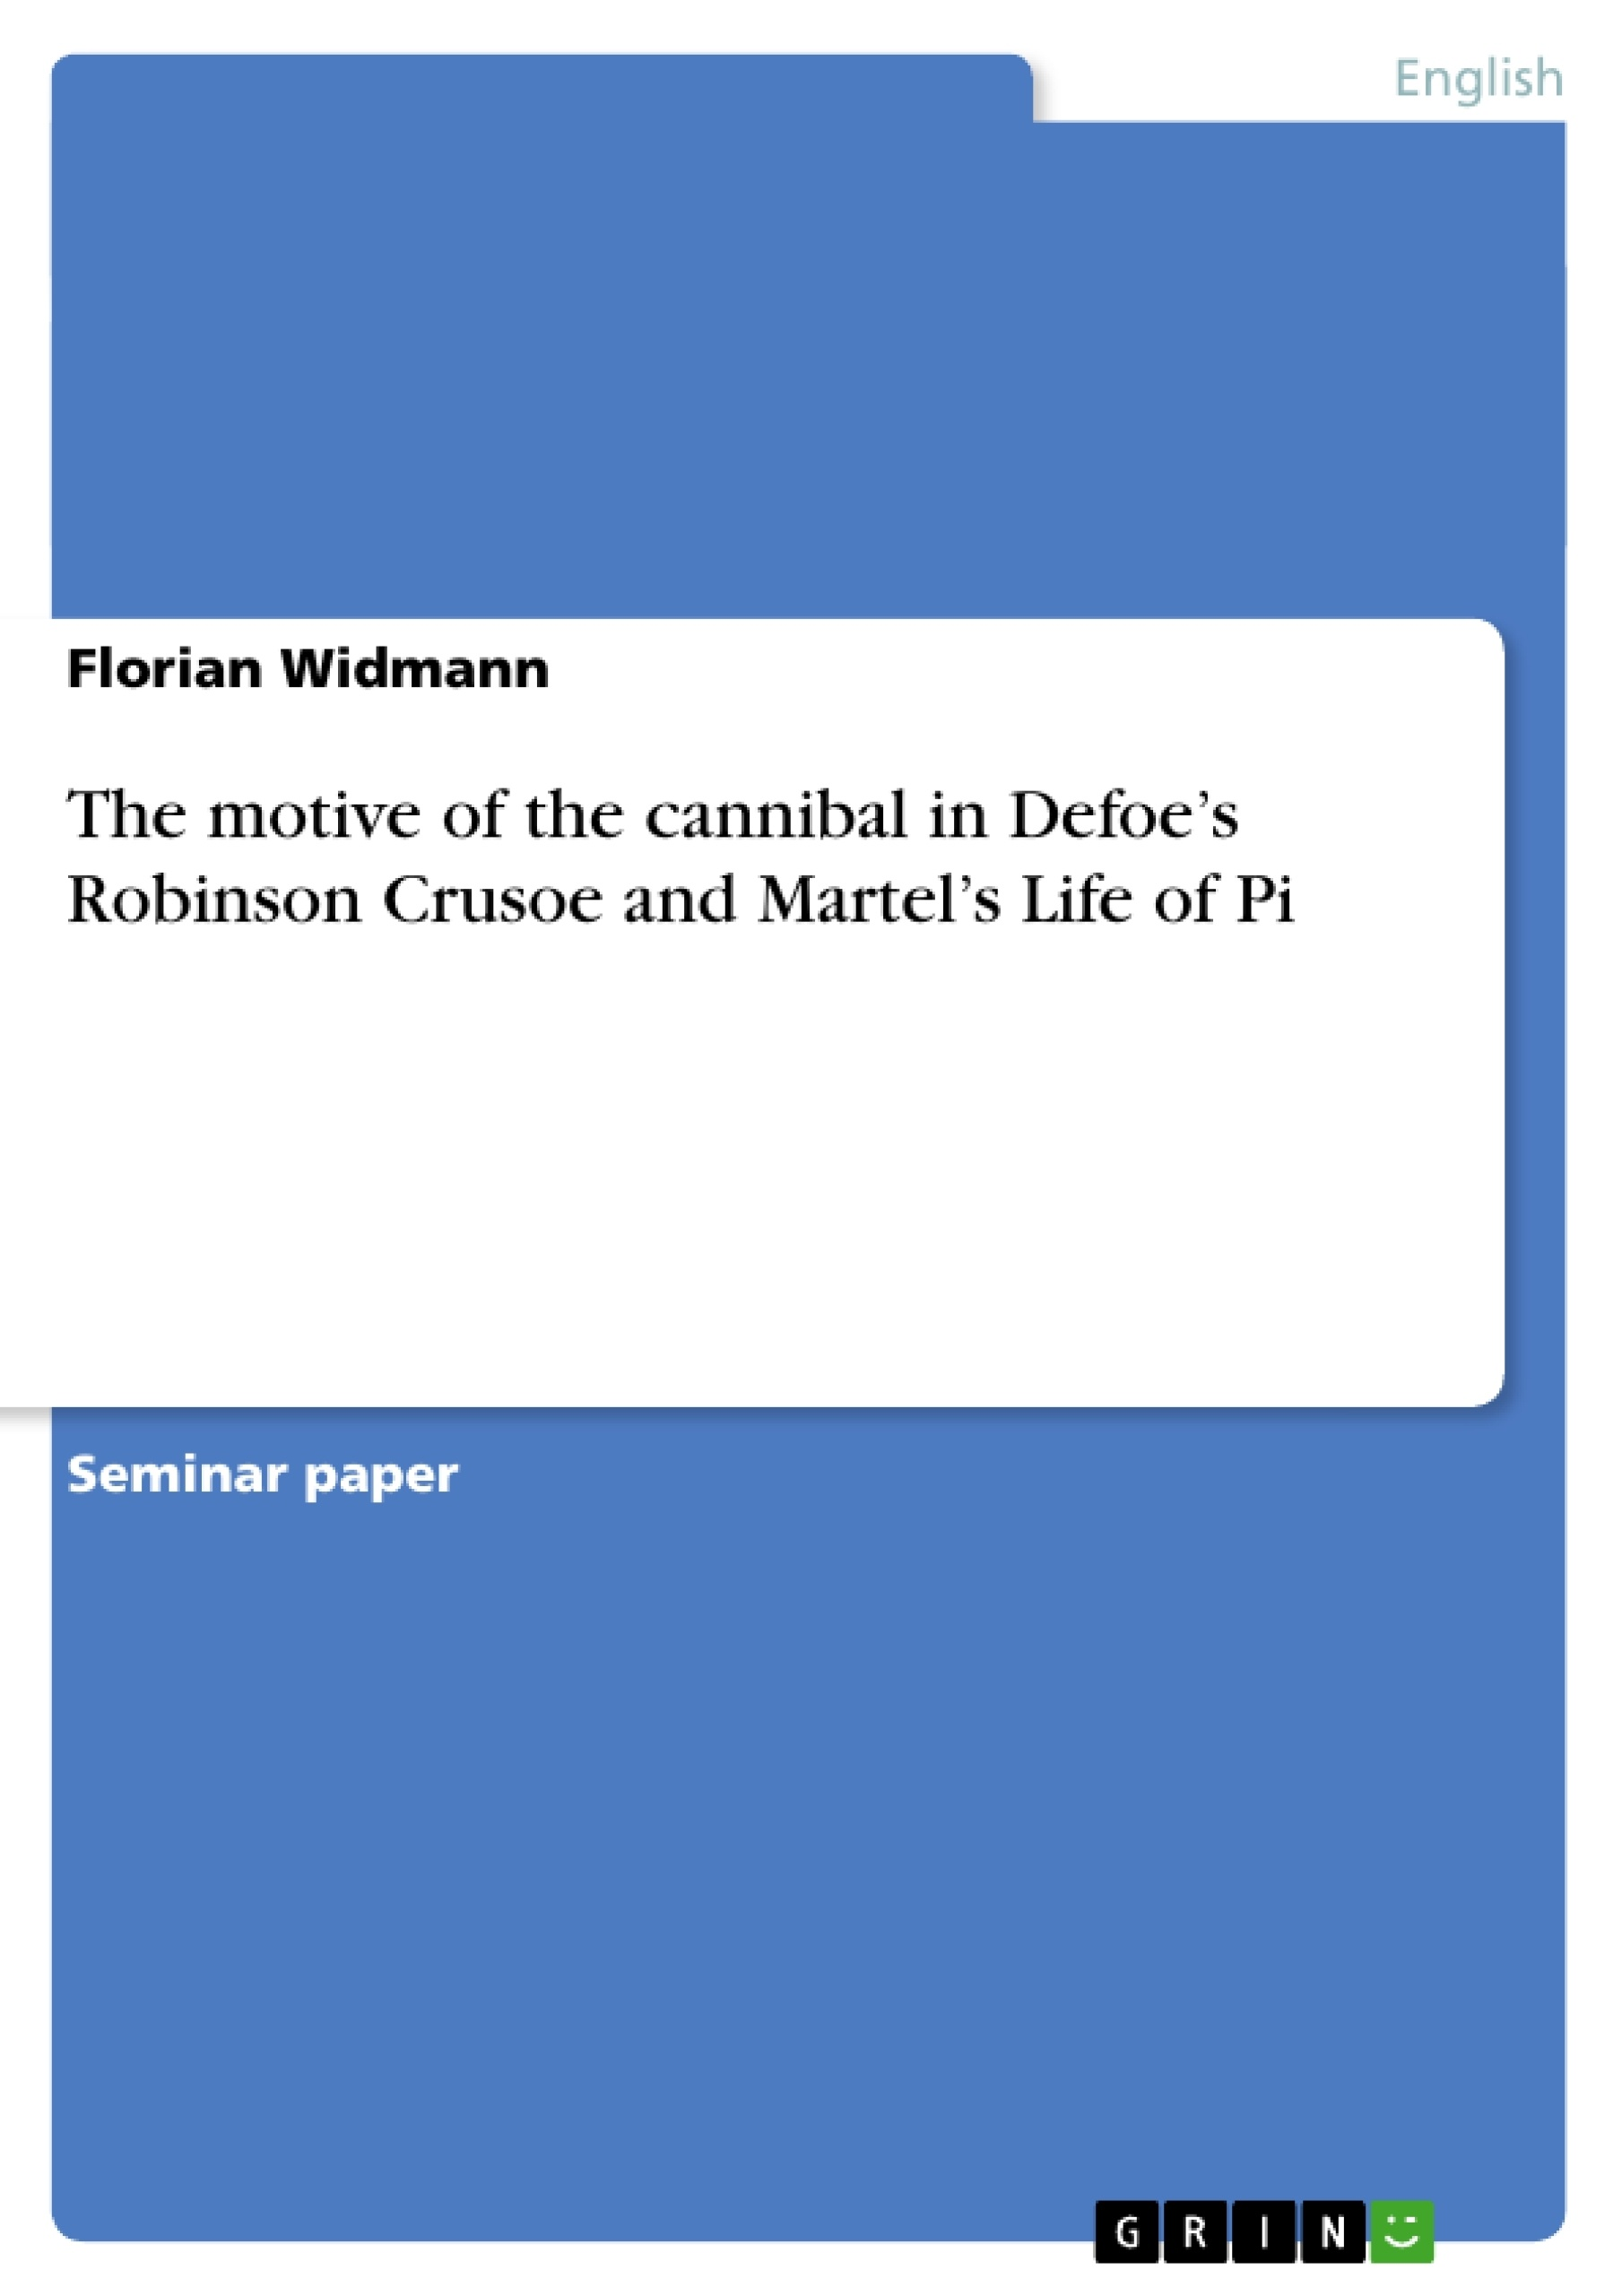 The motive of the cannibal in Defoe's Robinson Crusoe and Martel's Life of Pi